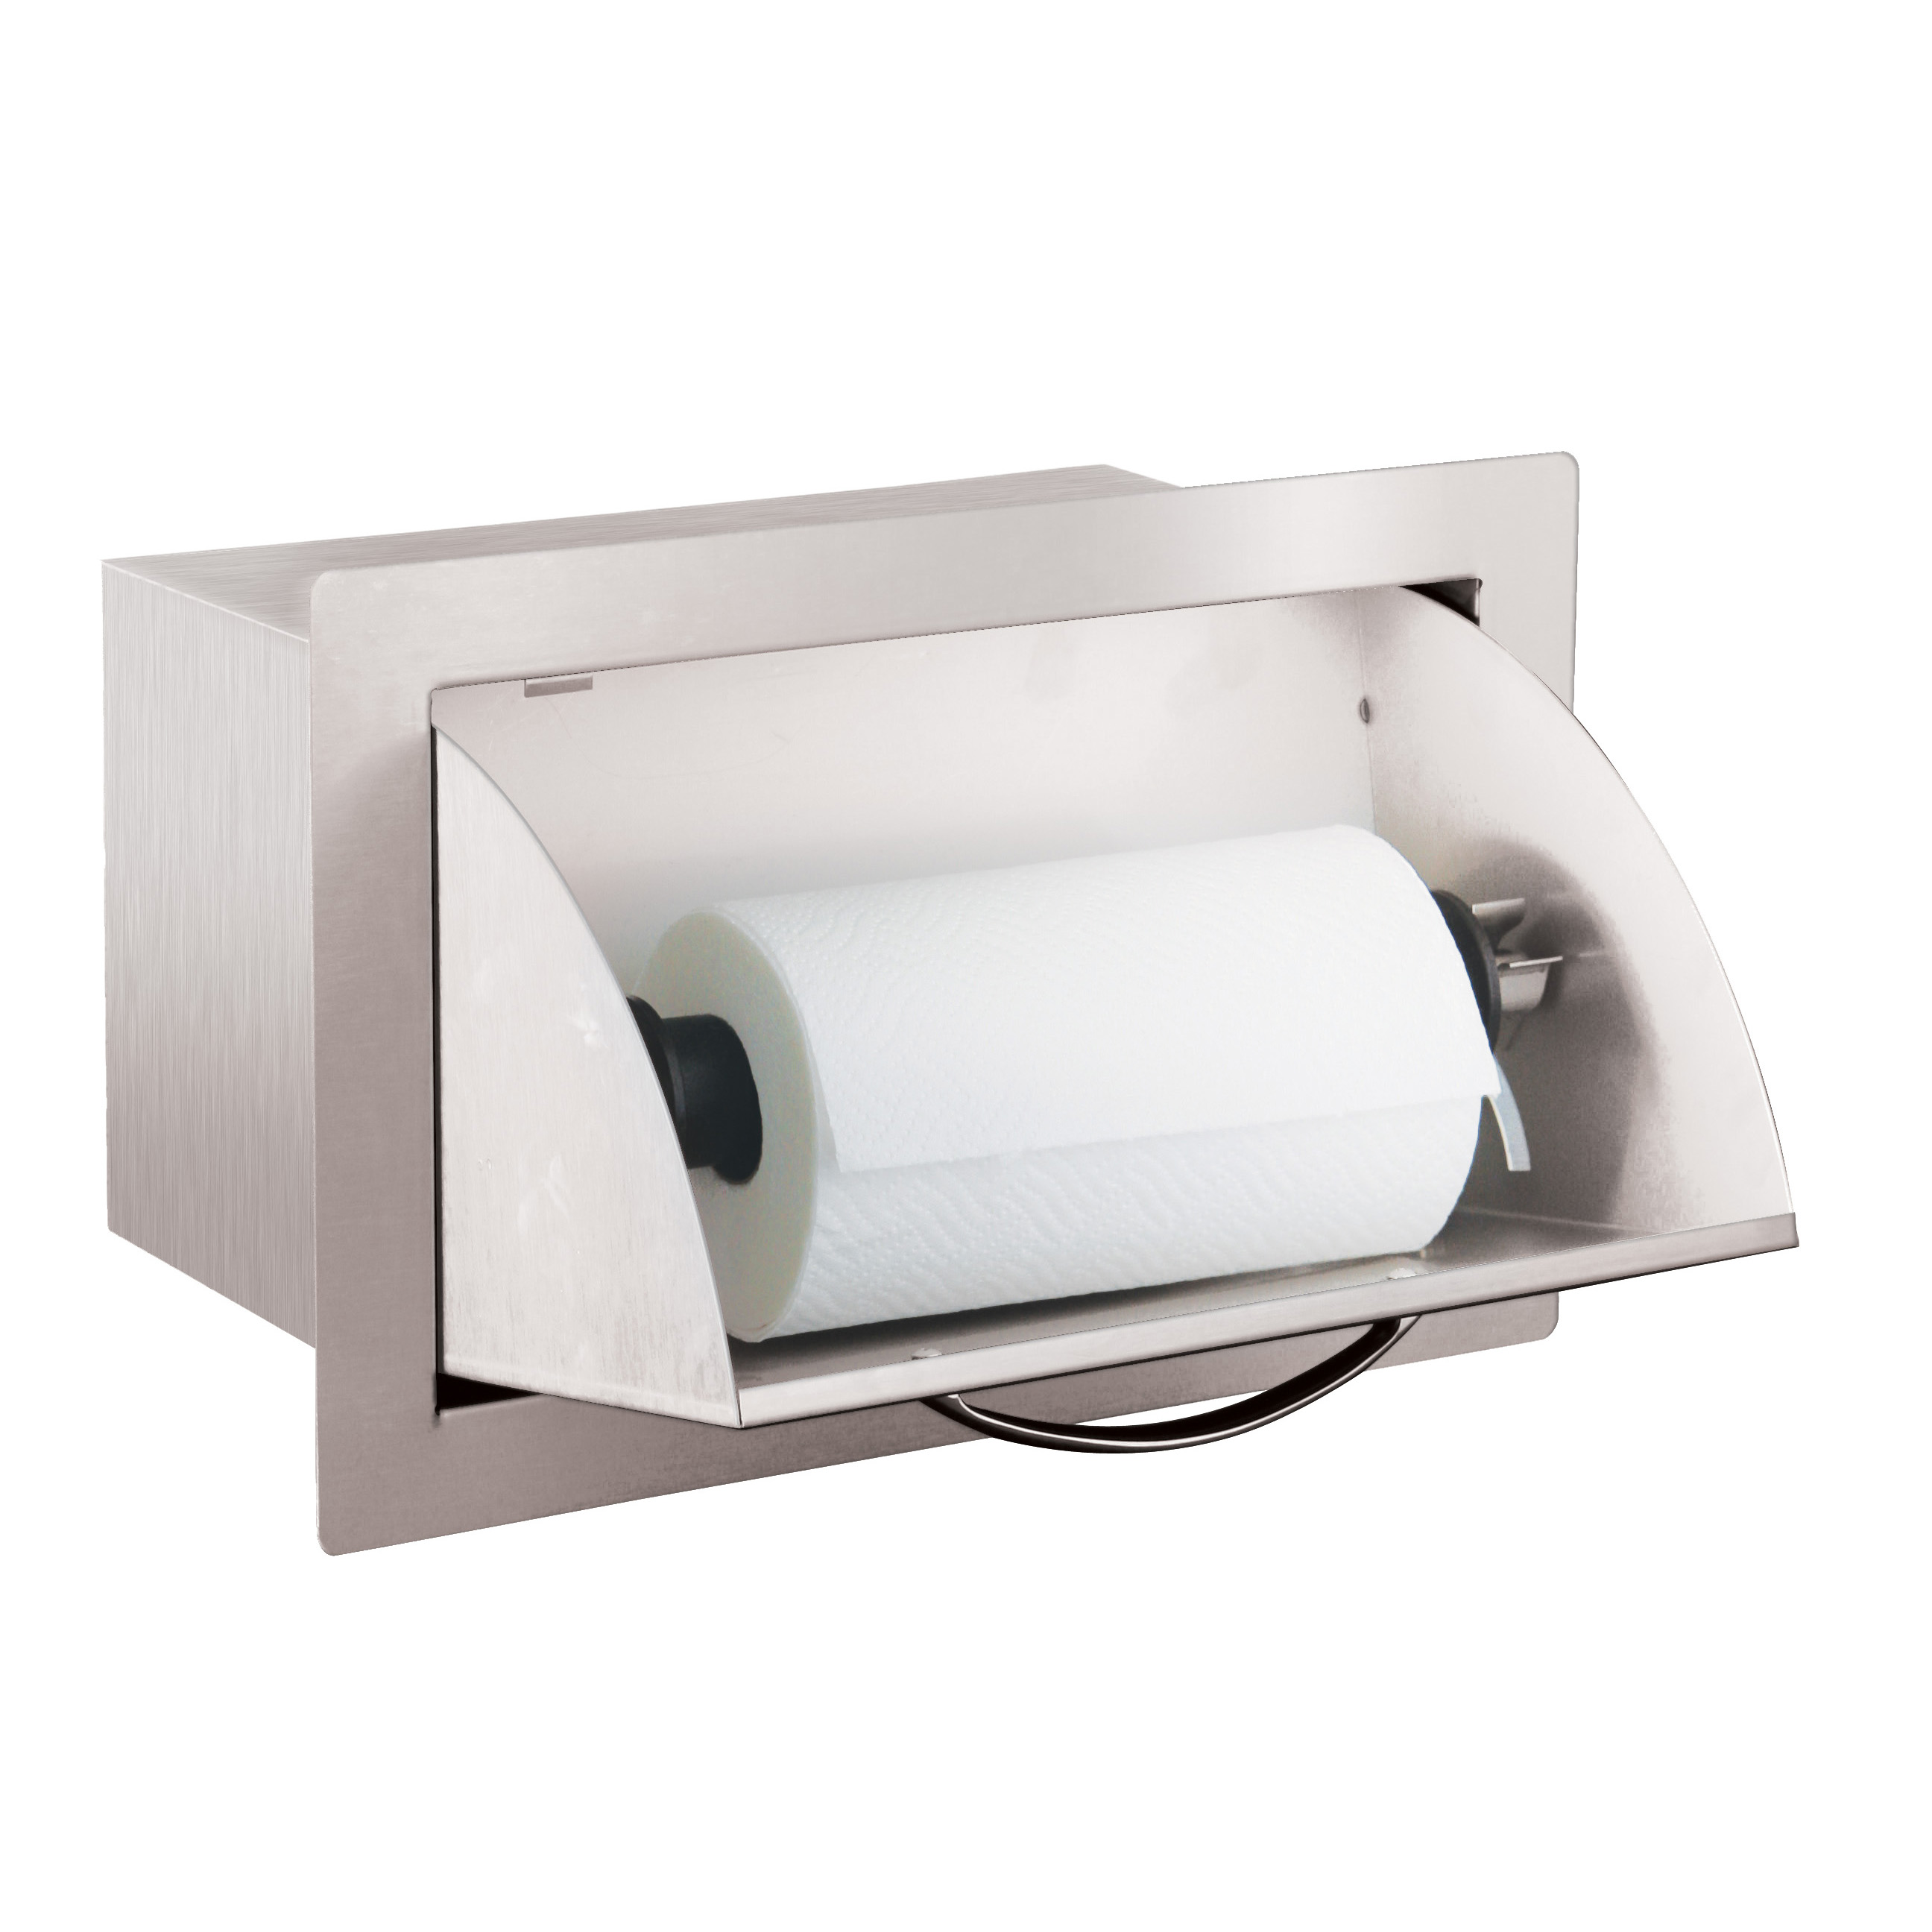 Paper towel holder for outdoor kitchen wow blog for Outdoor towel caddy